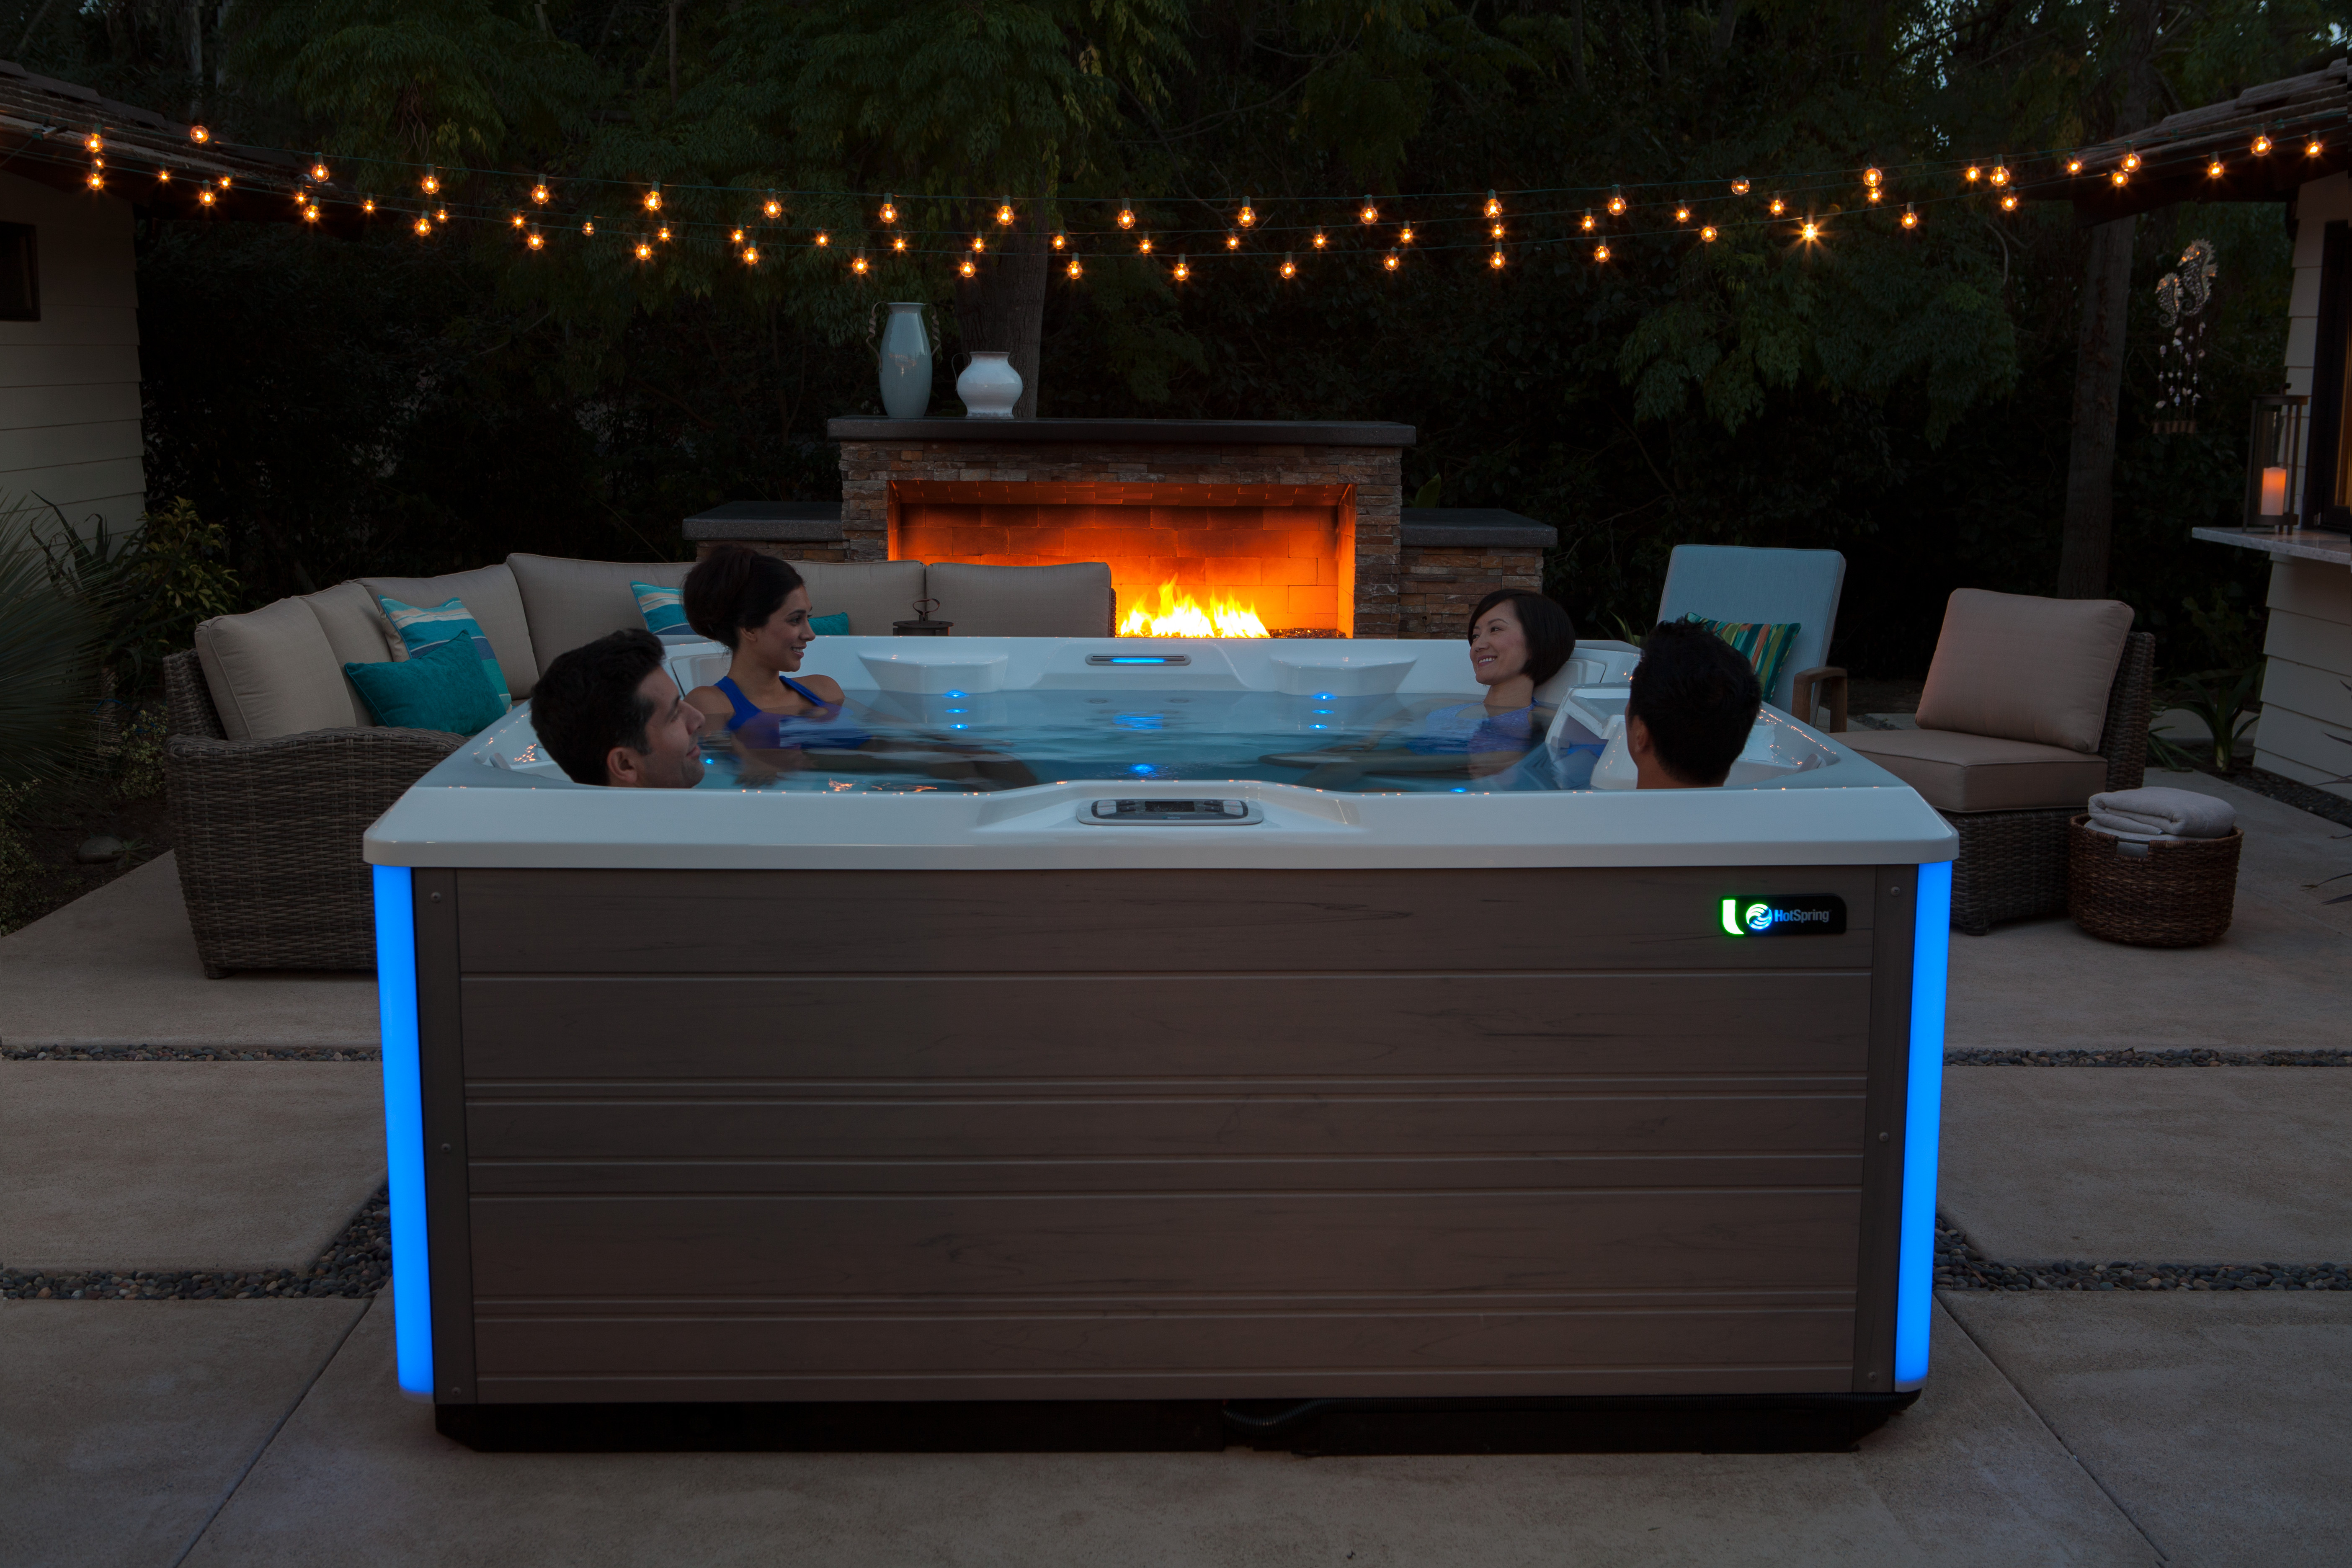 Are Hot Tubs a Good Investment?